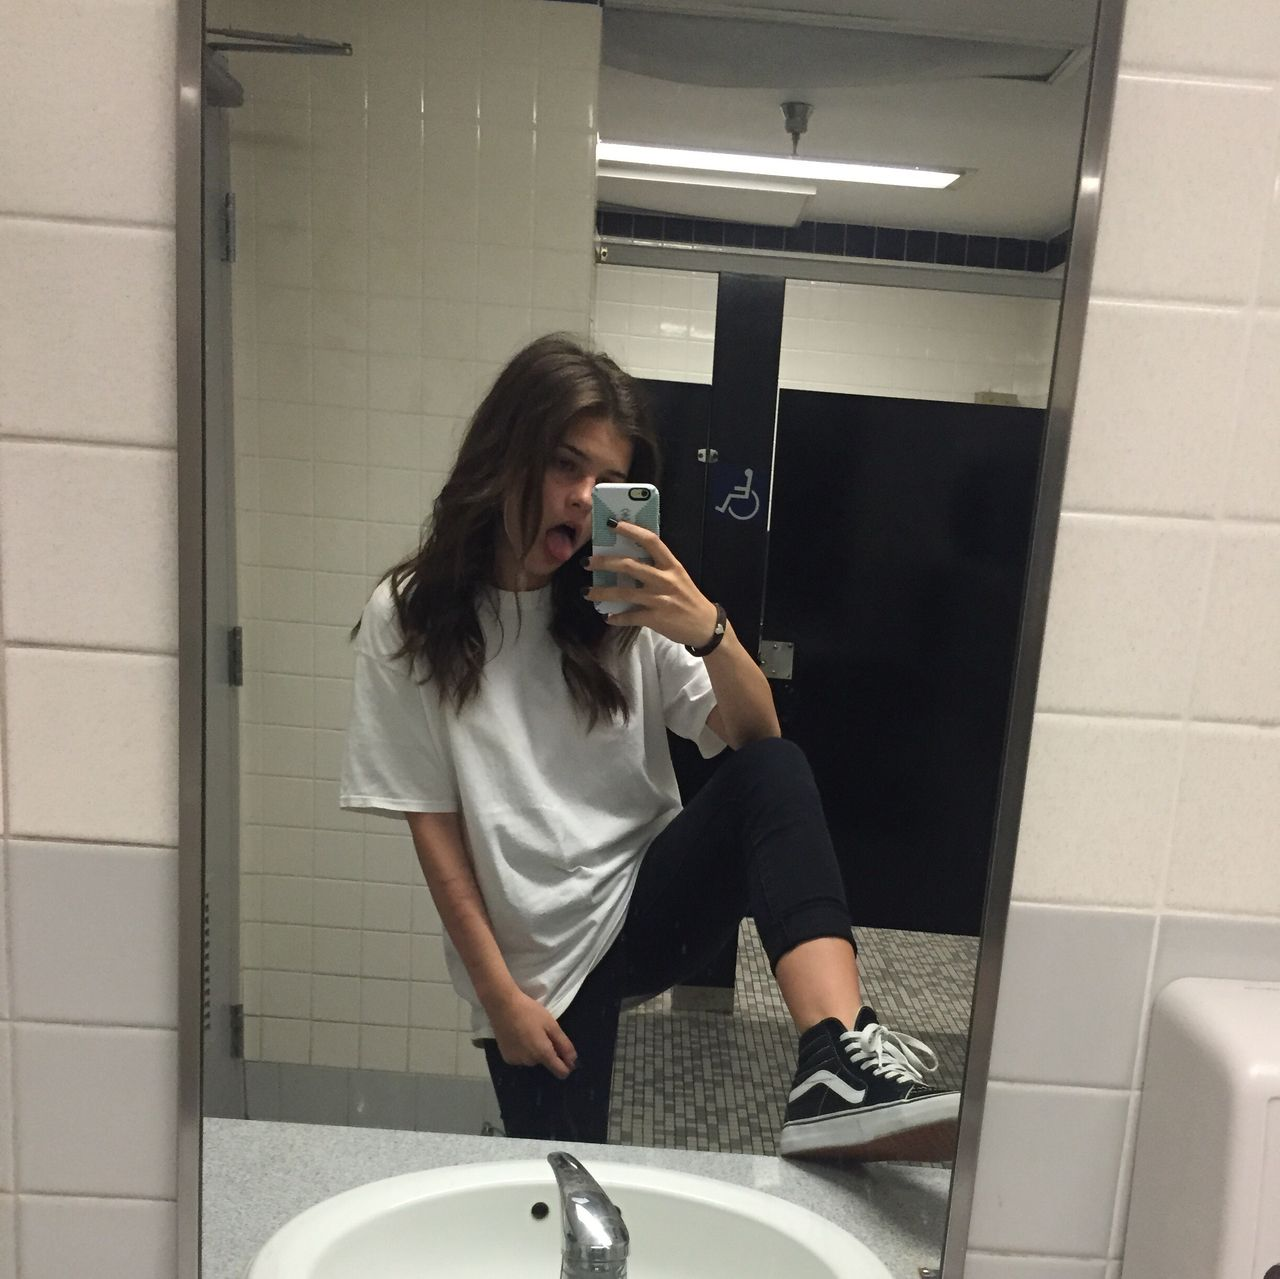 24  Tumblr. 24  Tumblr   wear   Pinterest   Clothes  Pose and Grunge